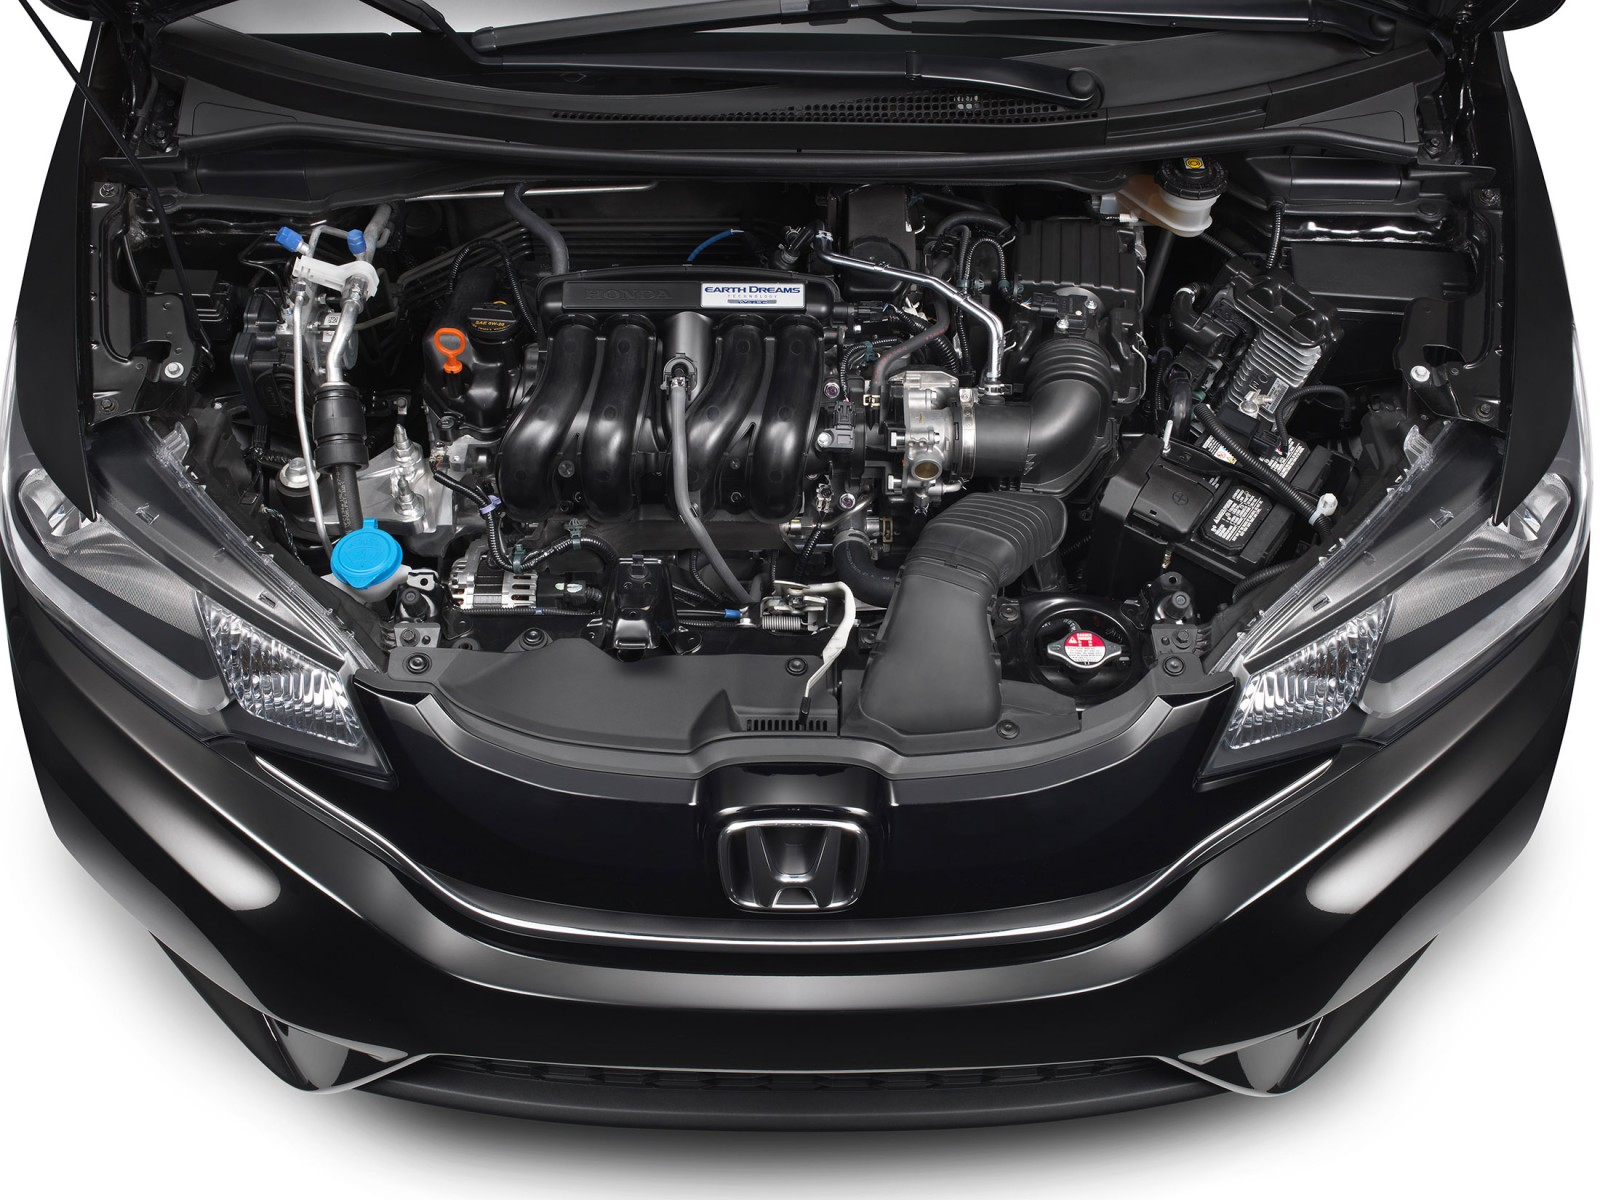 honda_fit_engine_bay